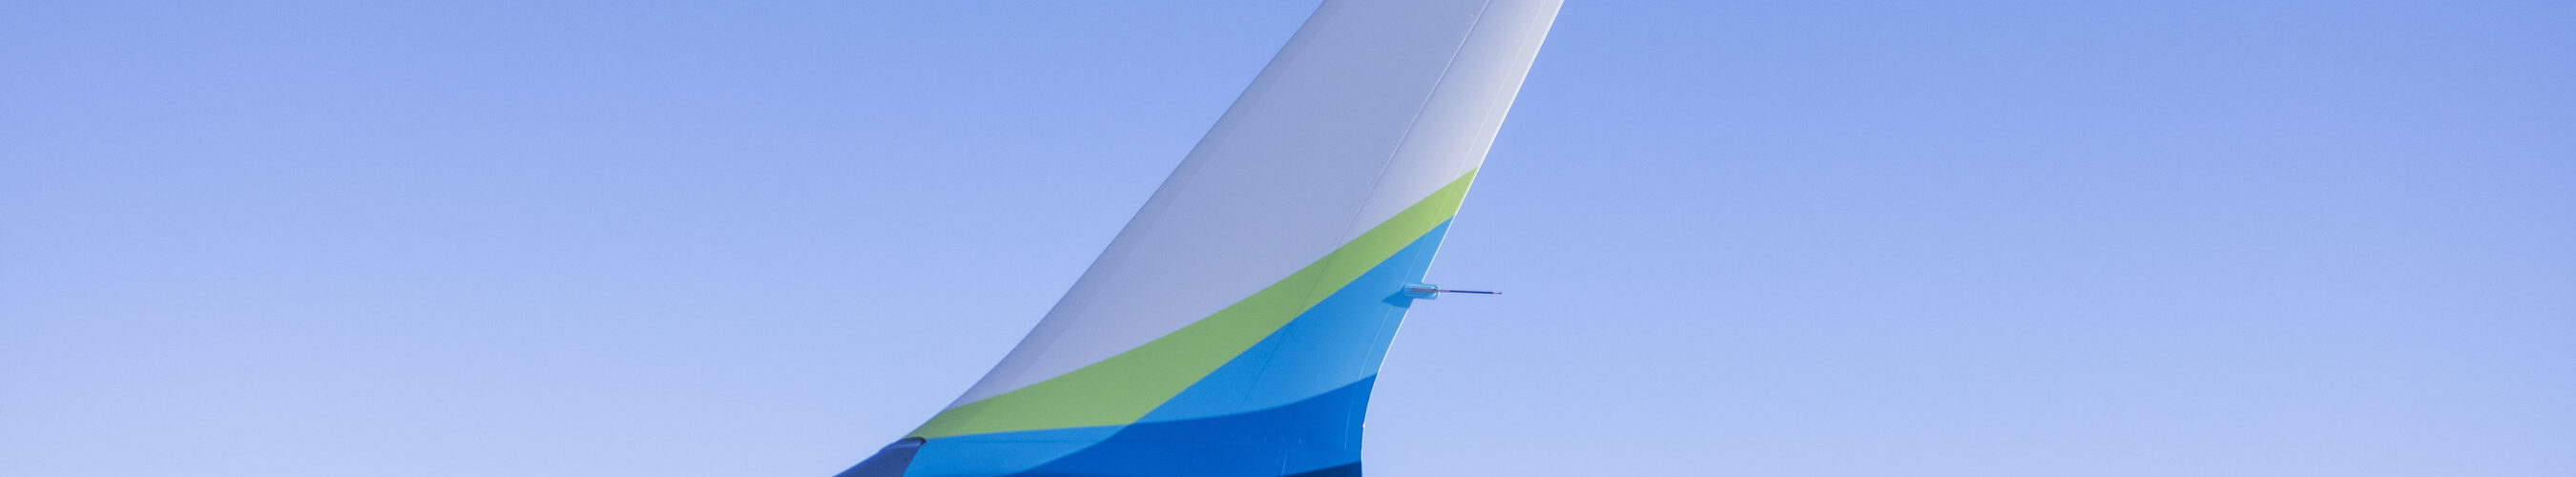 Alaska Airlines announces path to net zero by 2040